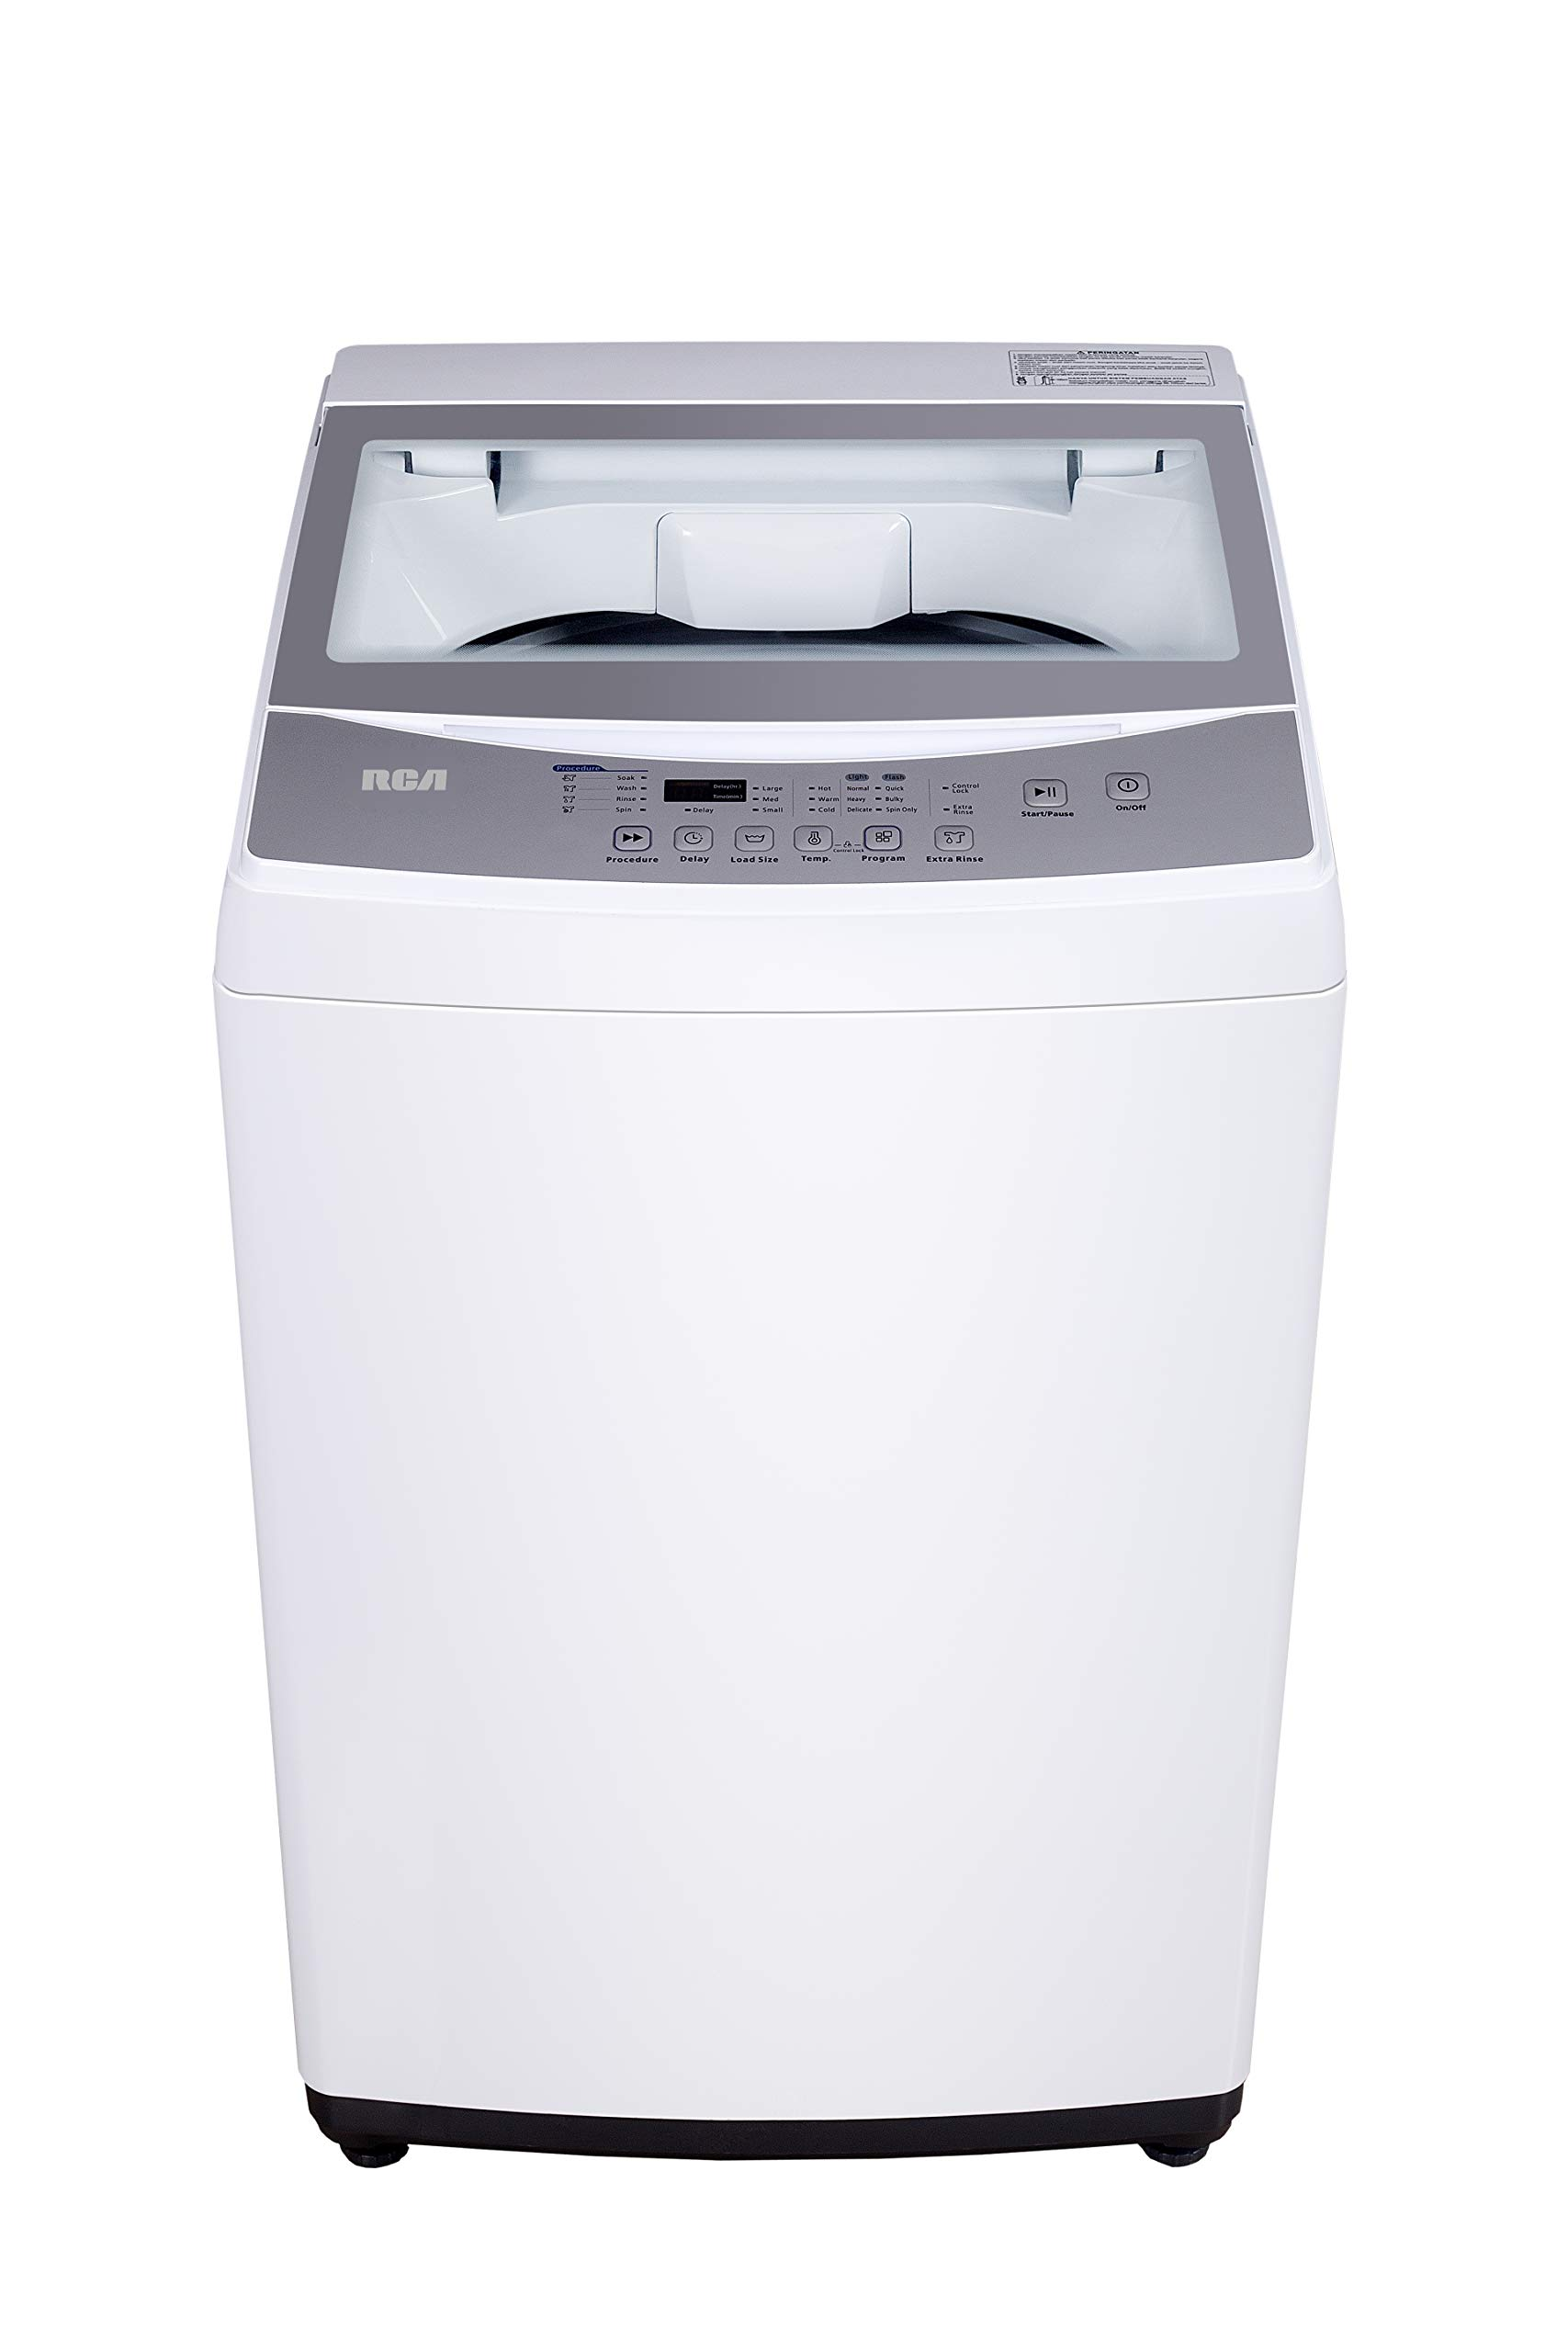 Curtis RPW210 Rca 2.1 Cu Ft Portable Washer by Curtis